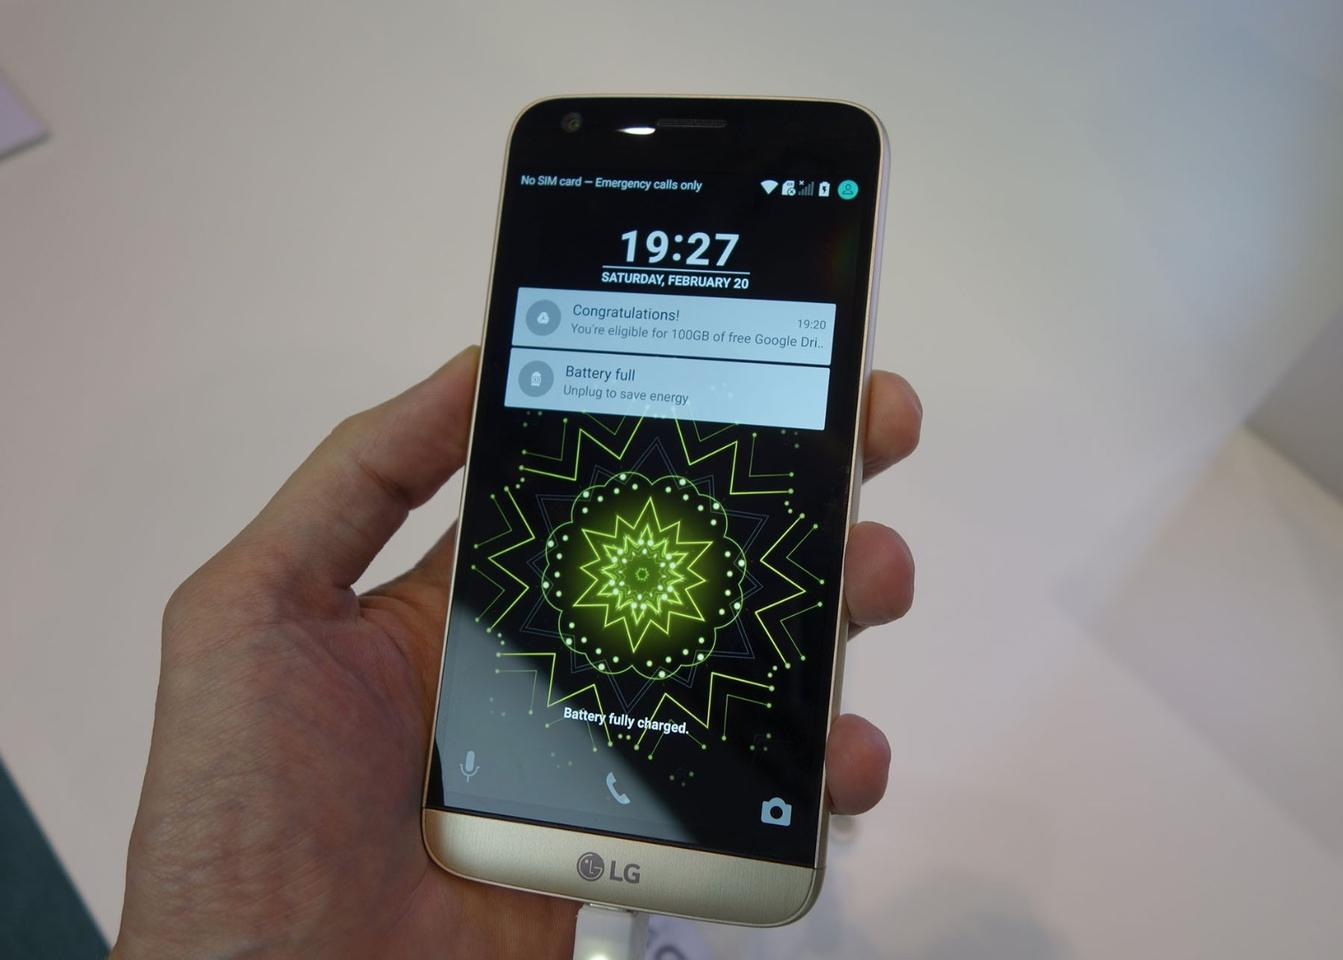 Hands-on with the LG G5, the first modular flagship smartphone